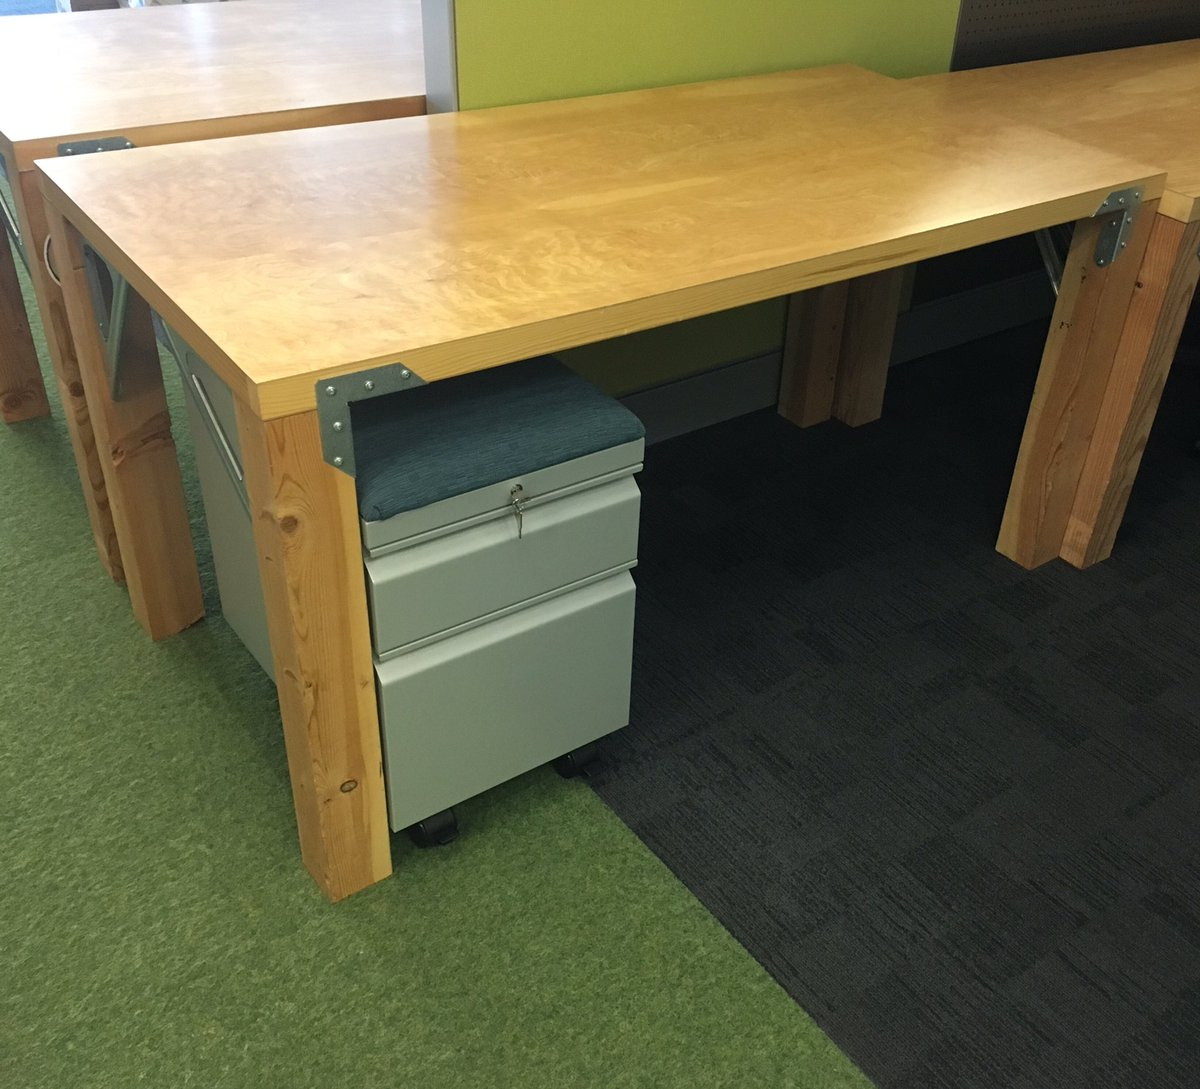 Matt Roberts on Twitter \ Door desks are still a thing at @awscloud @amazon - awesome! #frugality #customerobsession #BePeculiar\u2026 \  & Matt Roberts on Twitter: \